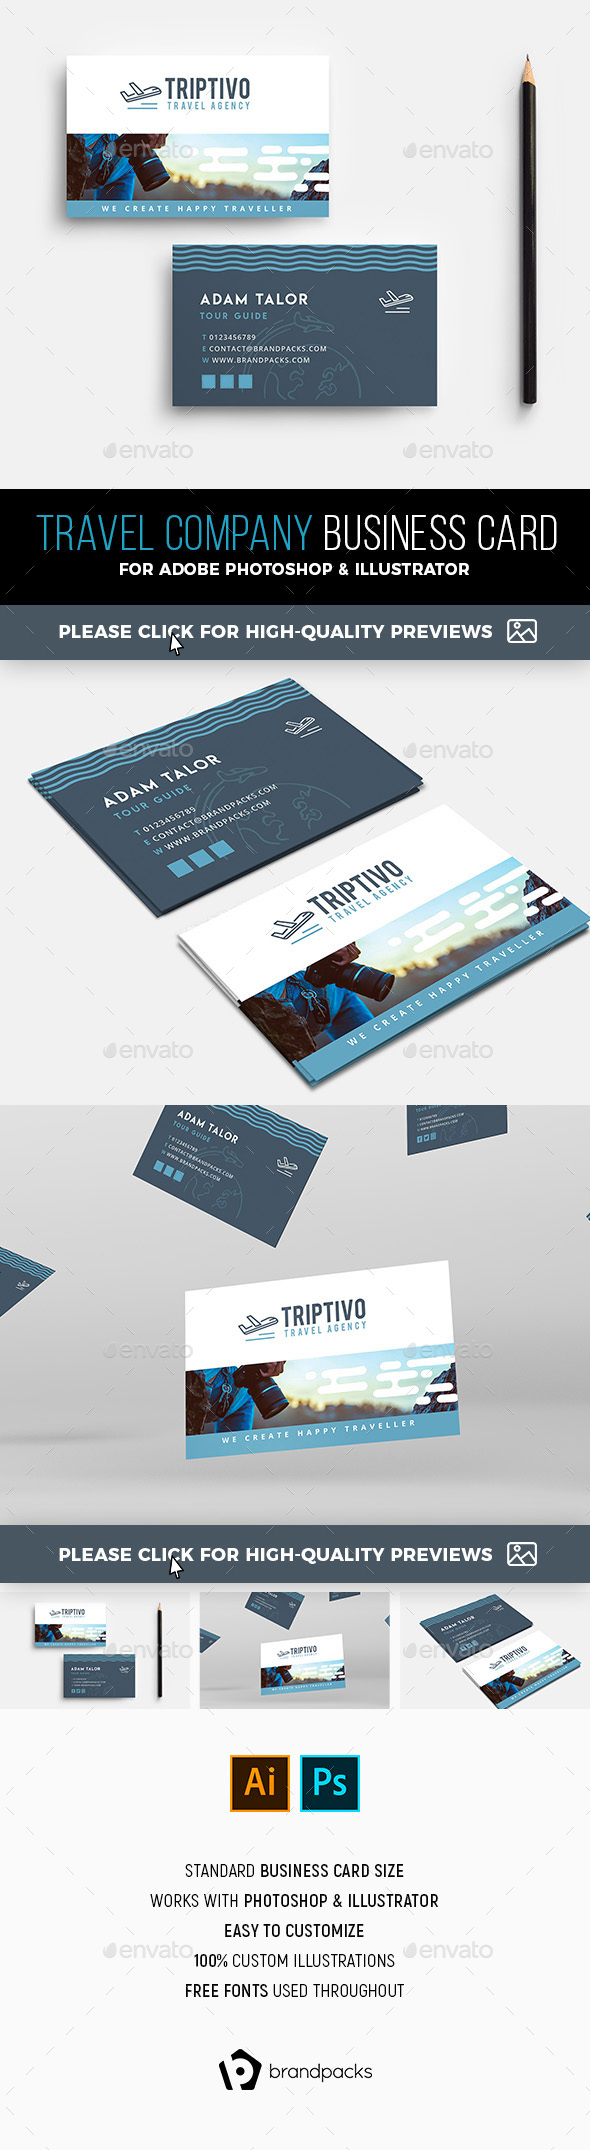 Travel Company Business Card Template by BrandPacks | GraphicRiver